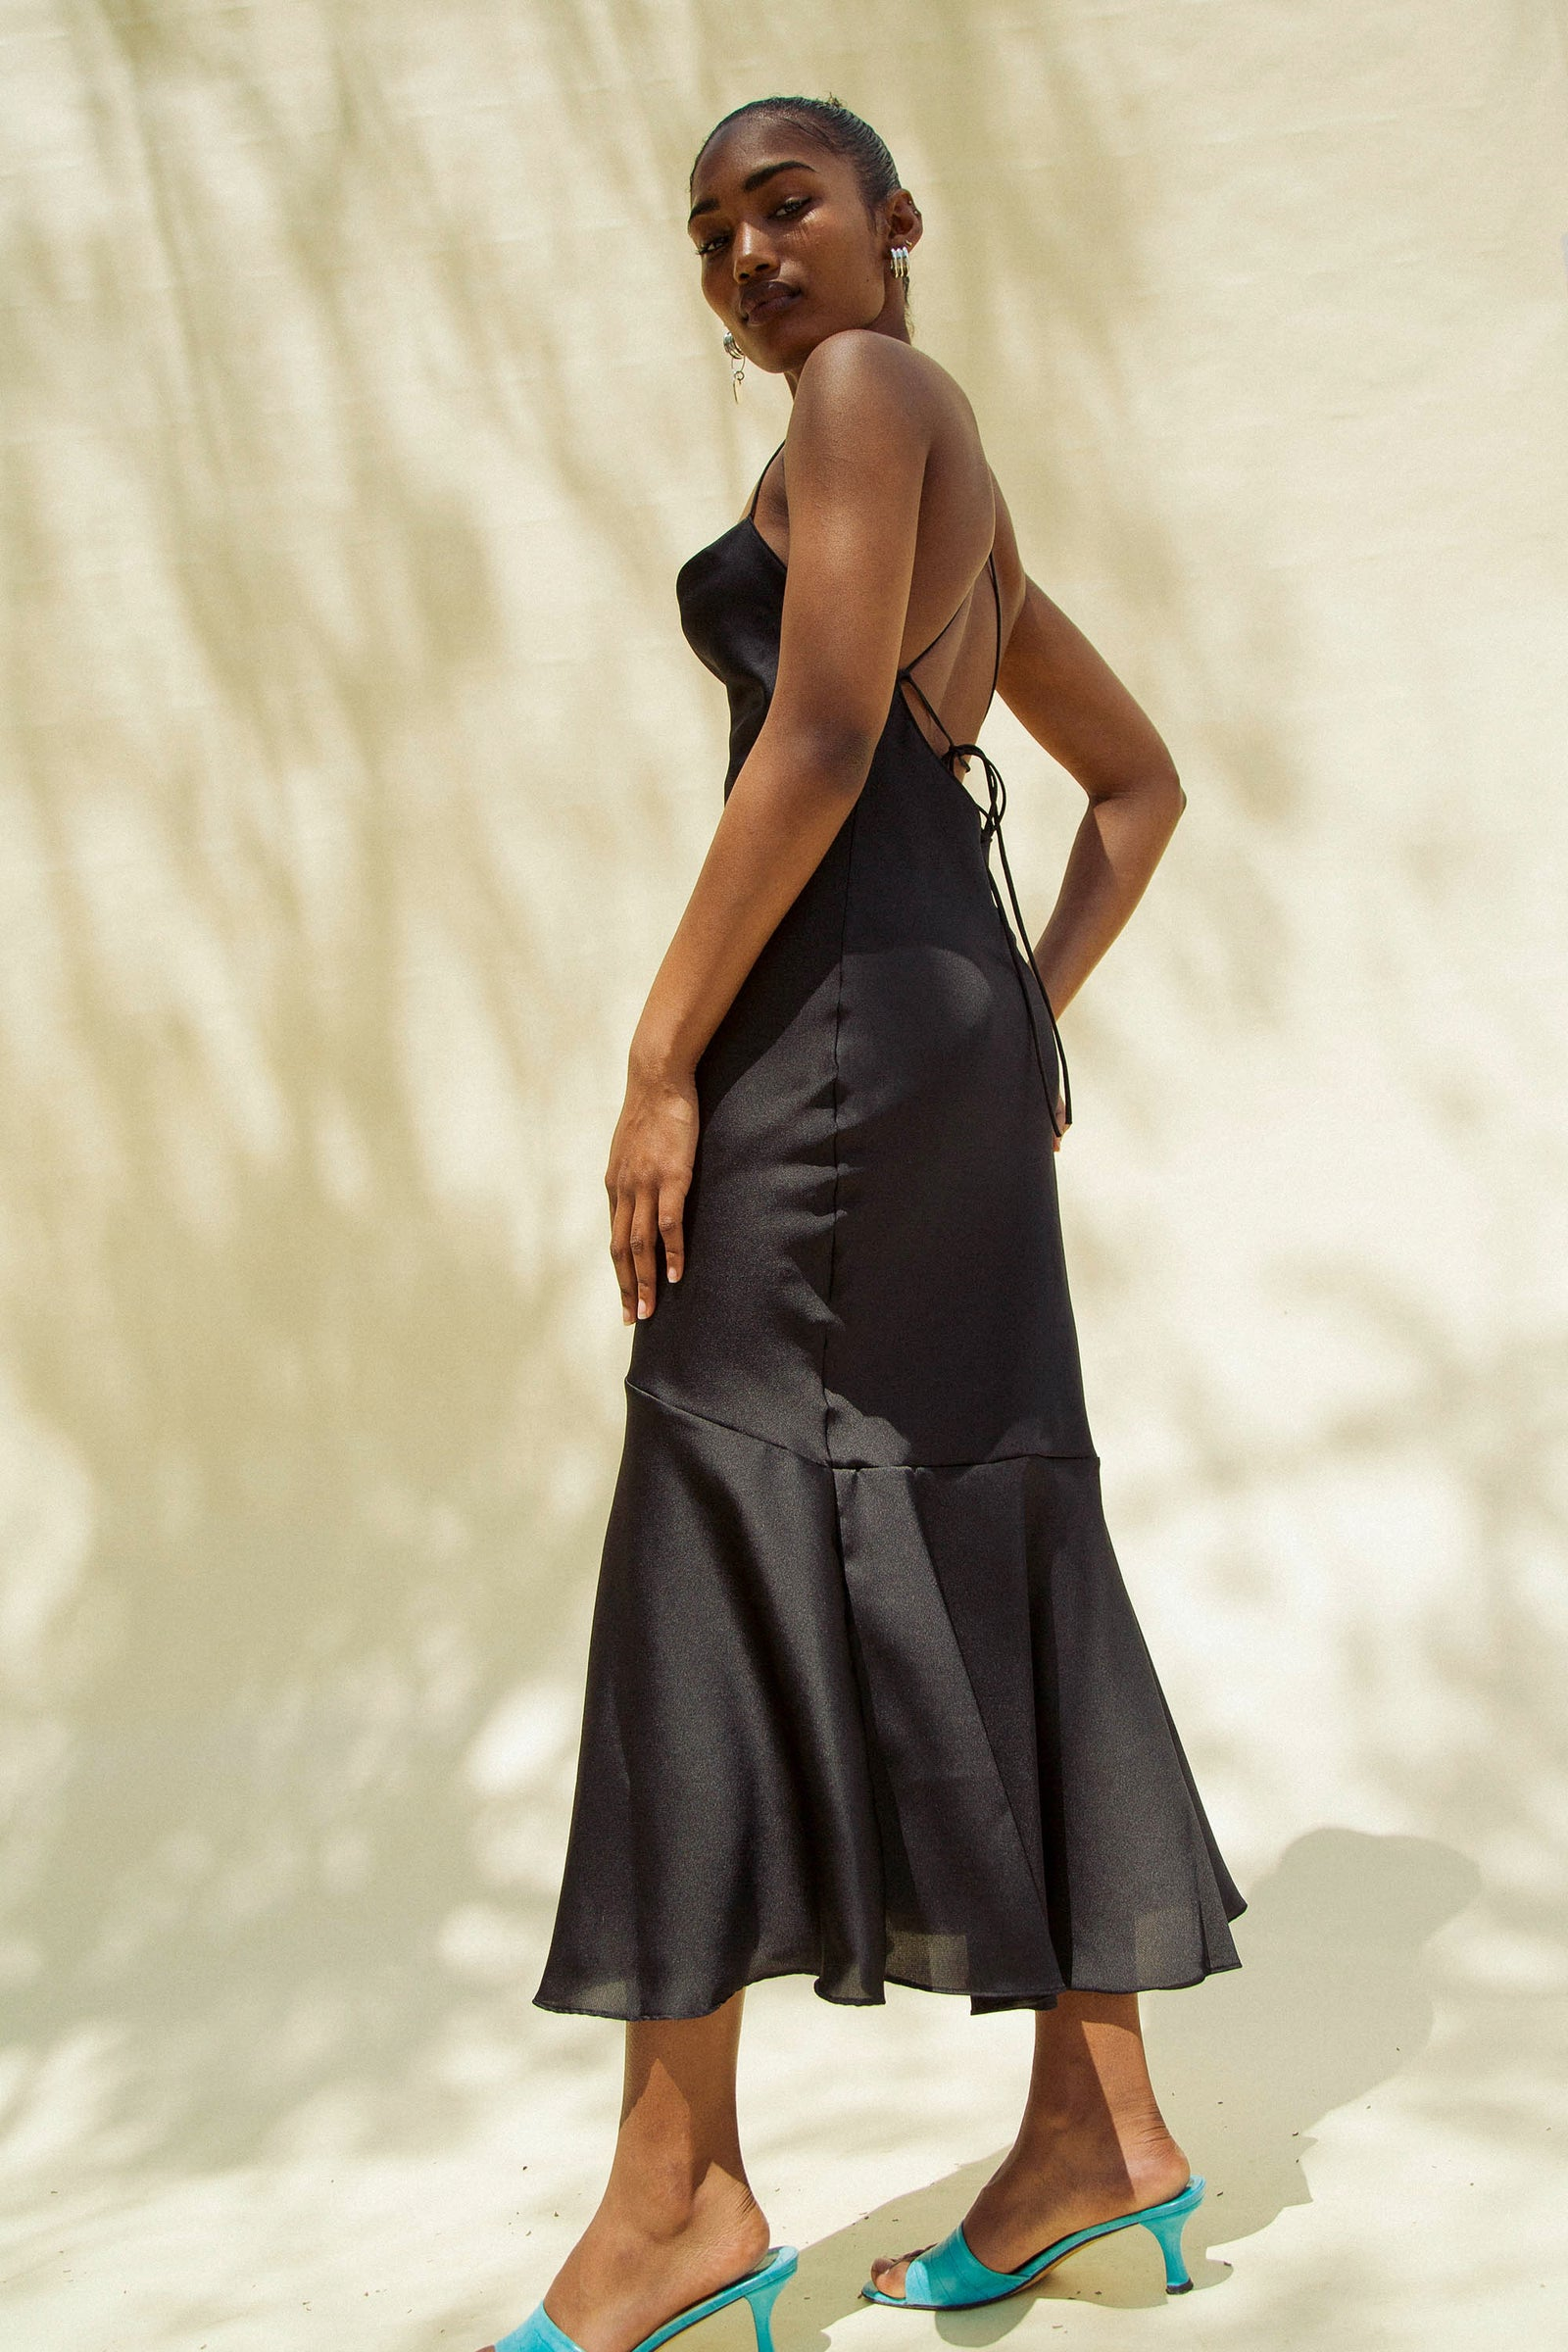 The Line by K Robi Black Slip Dress